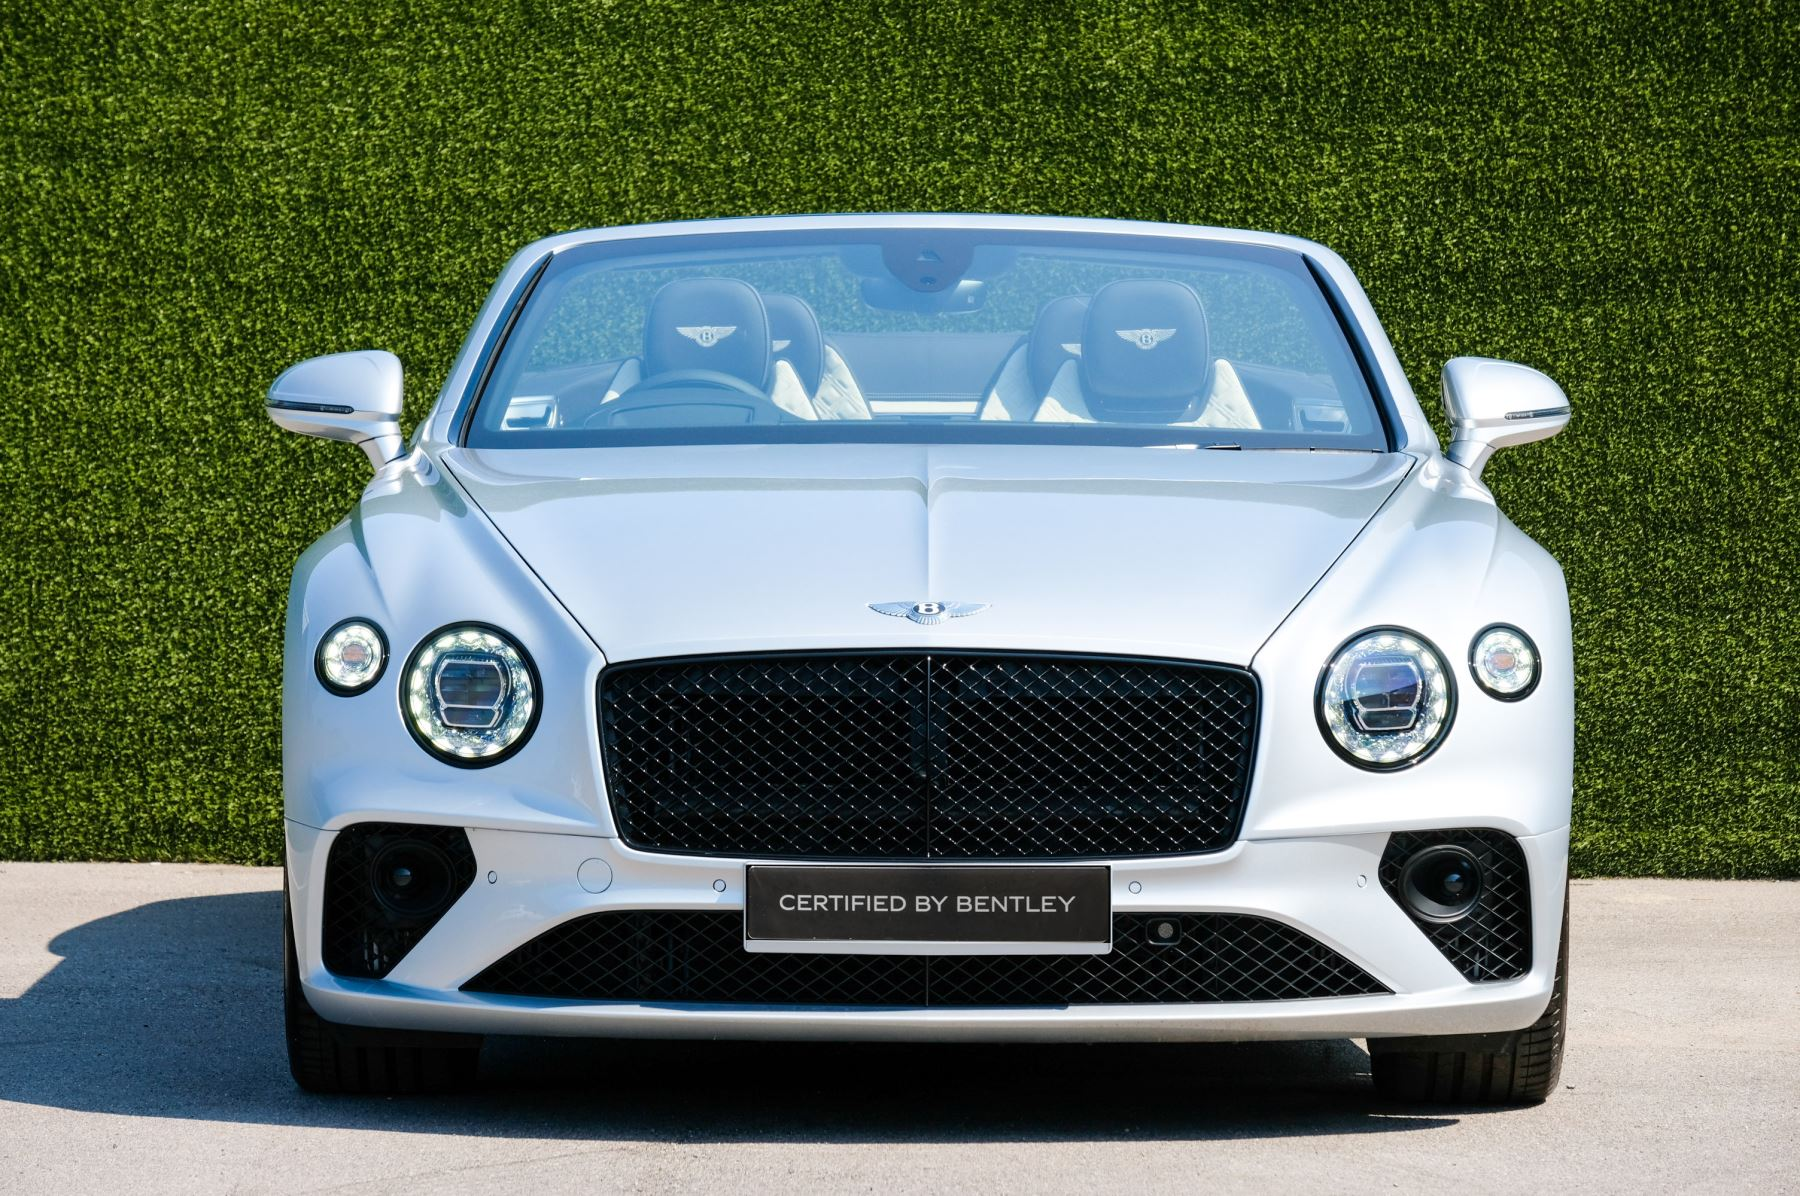 Bentley Continental GTC 4.0 V8 - Mulliner Driving Specification and Blackline Specification with 22 Inch Alloys image 2